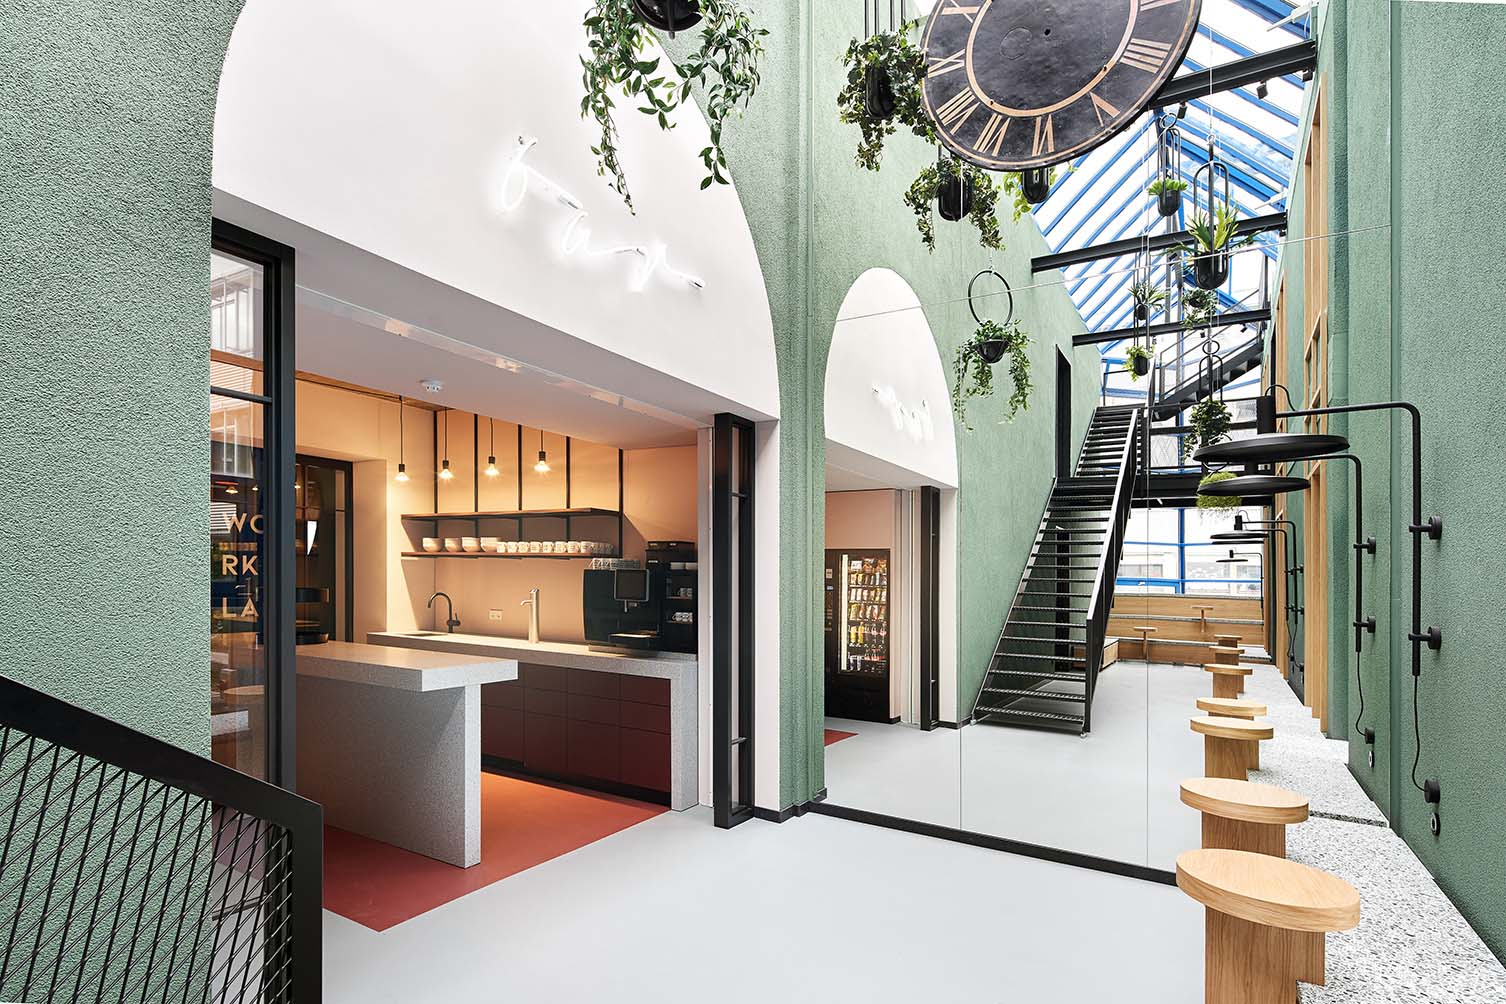 Urban Spaces Stuttgart Coworking Space Design by Studio Komo